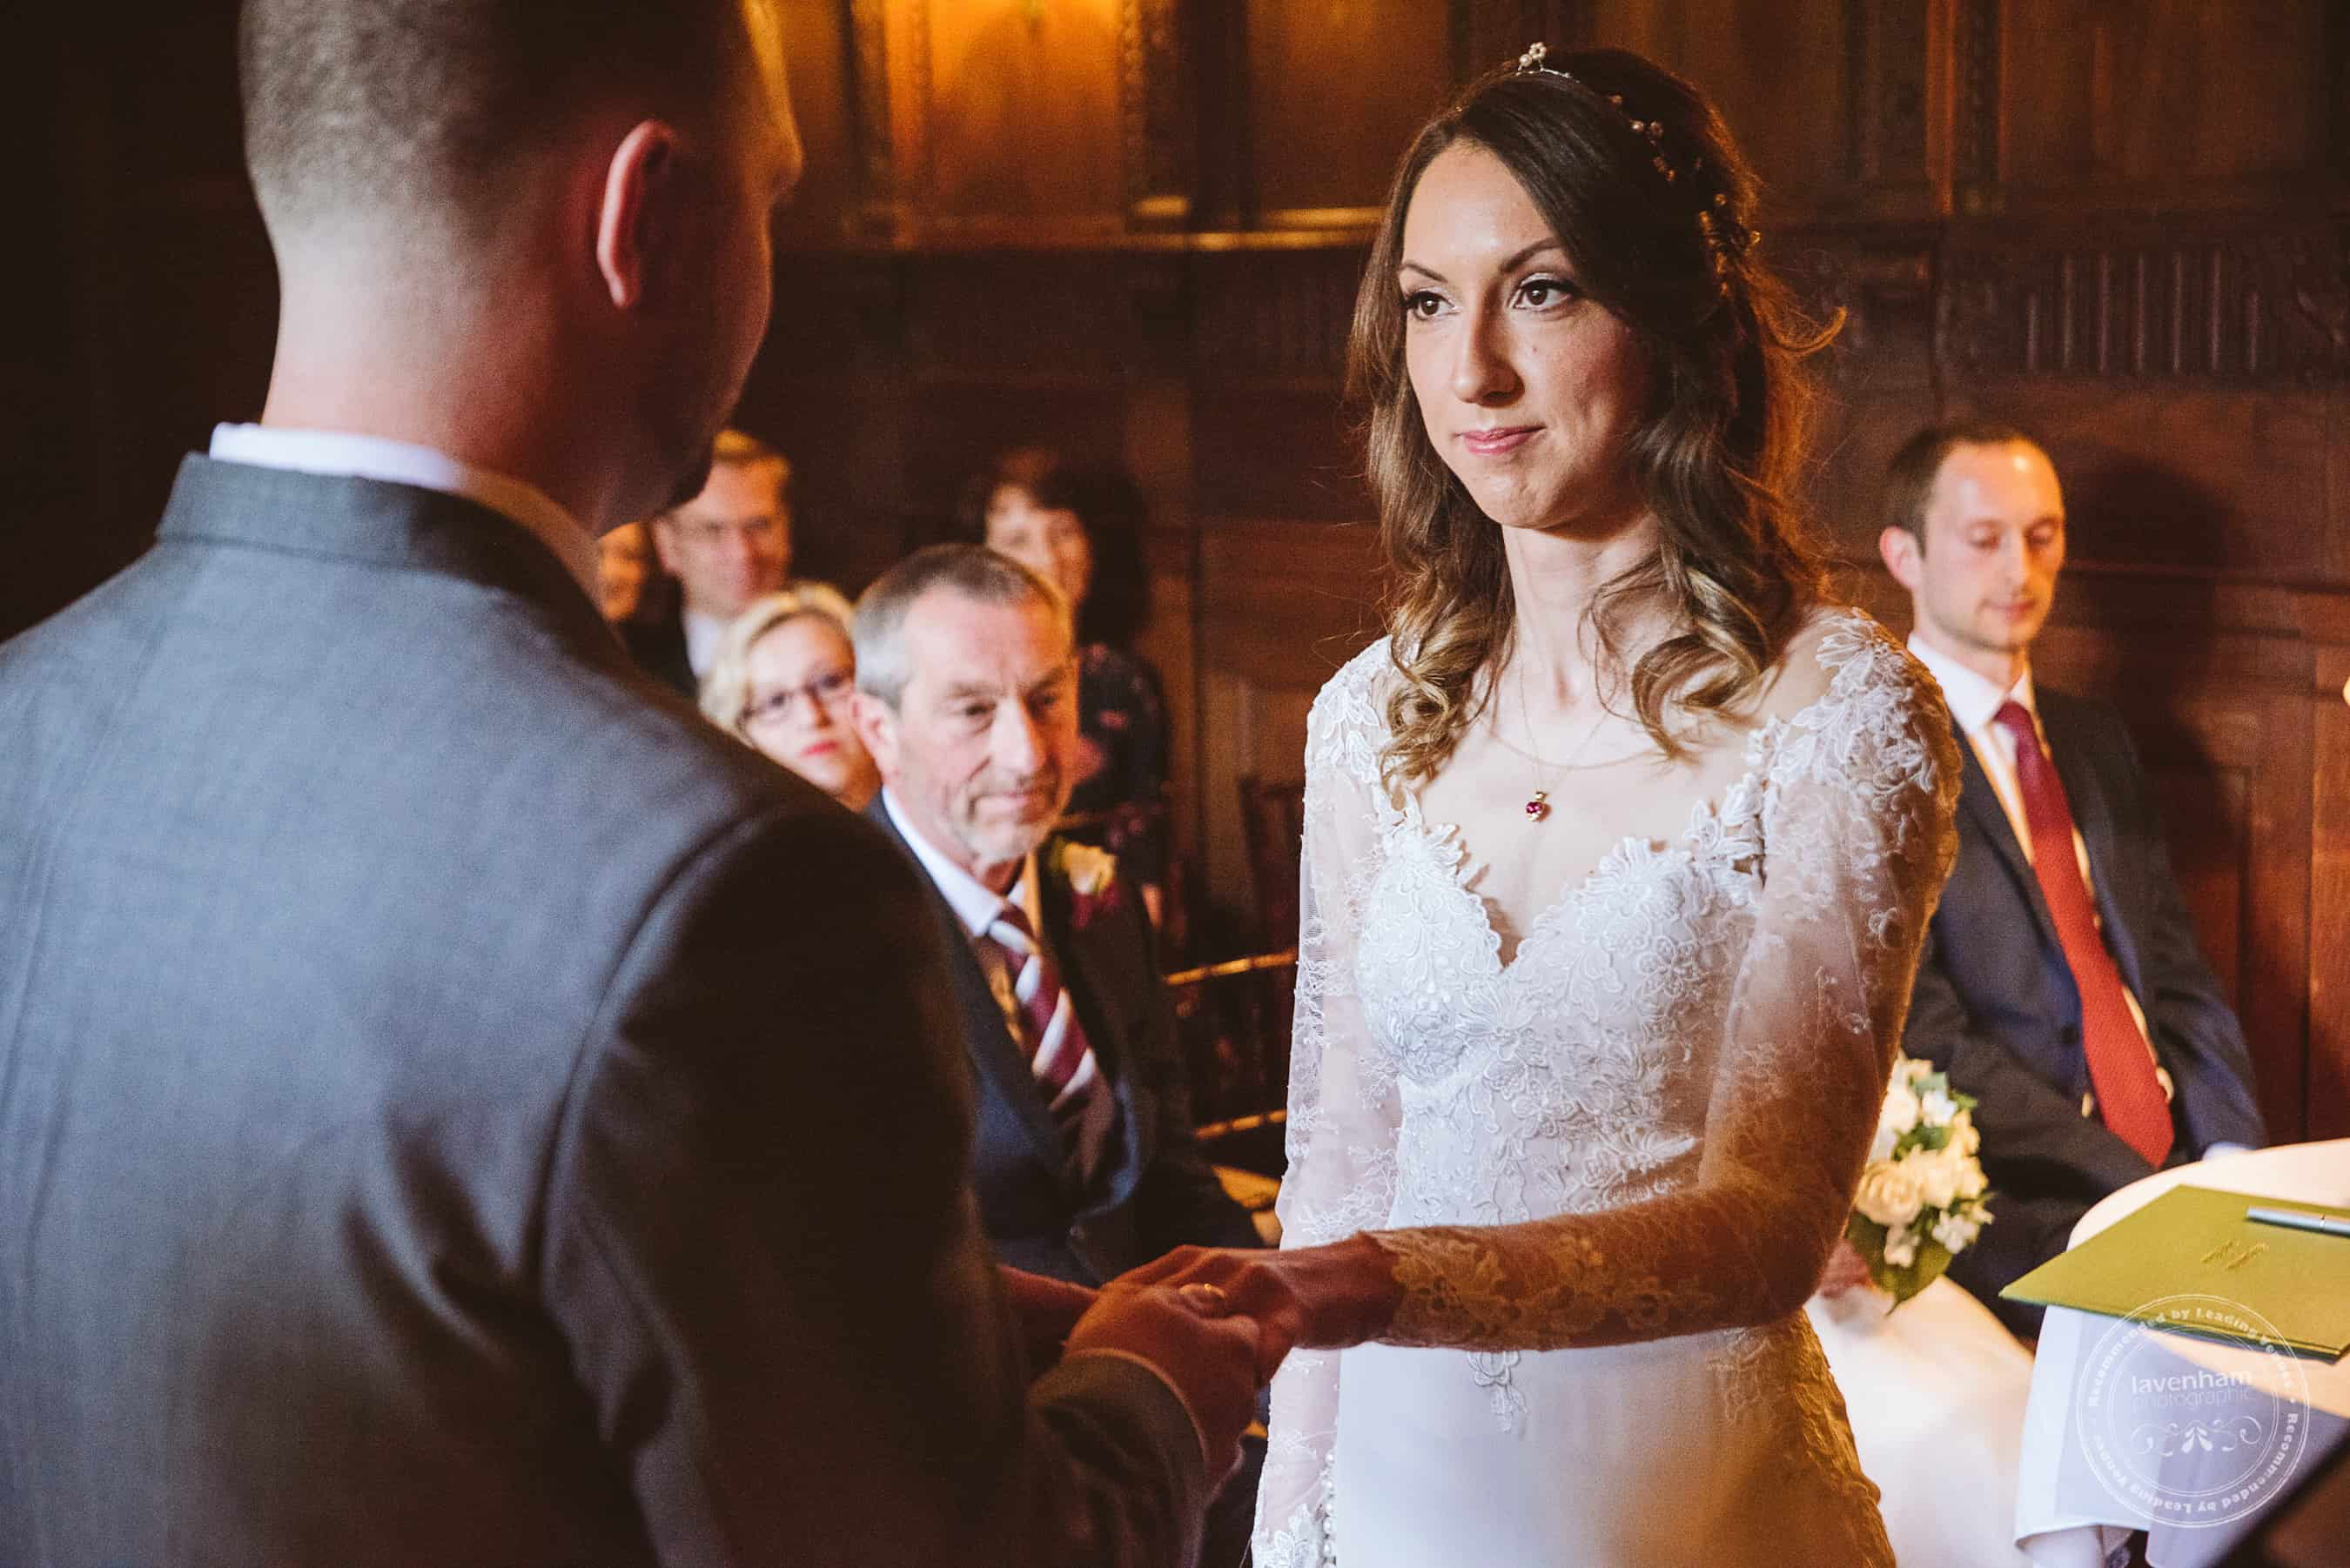 041118 Woodhall Manor Wedding Photography by Lavenham Photographic 039